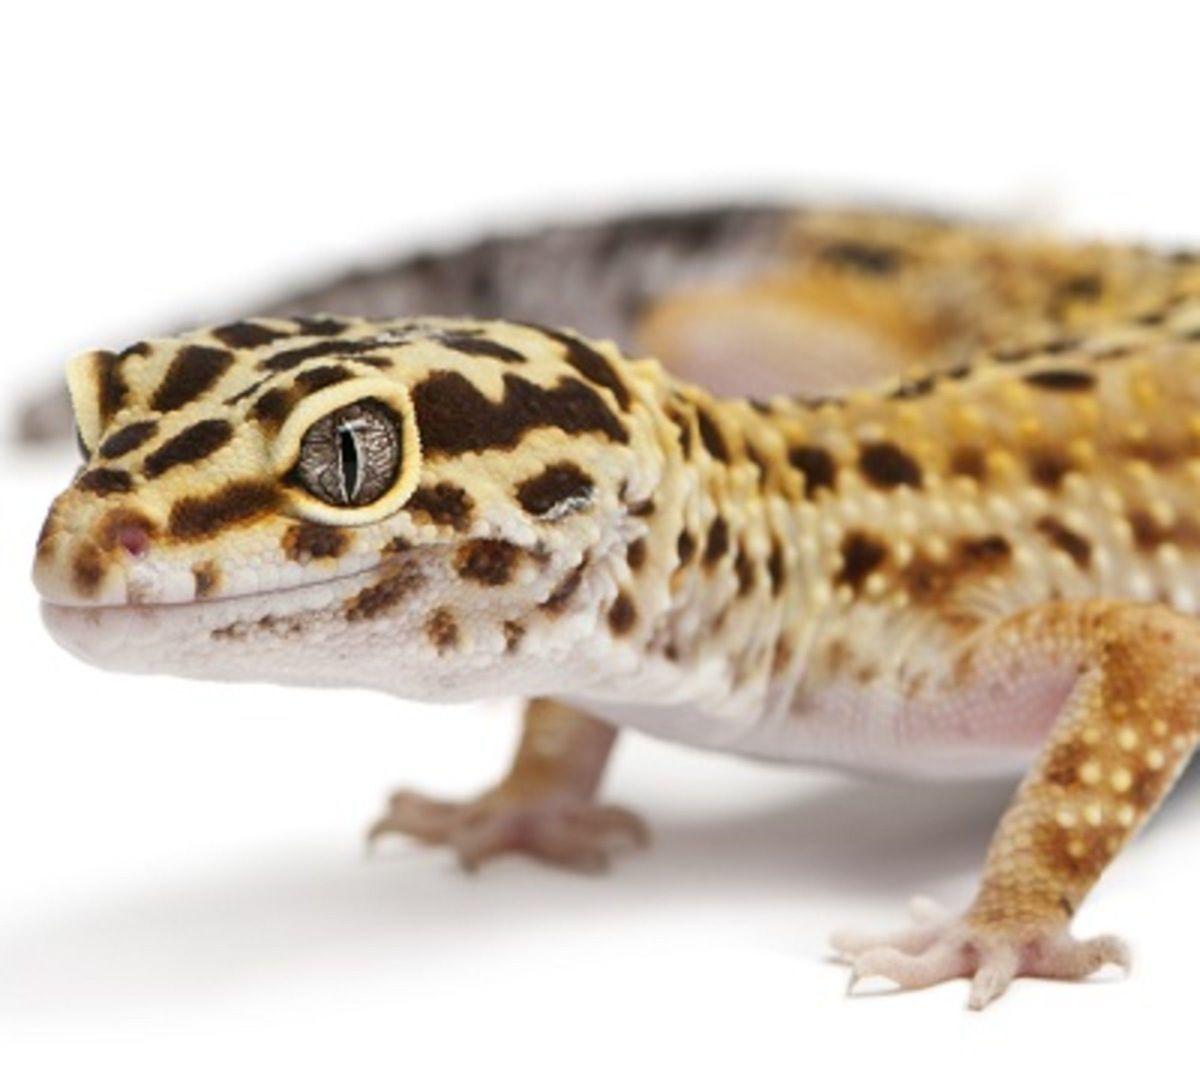 A Beginners Guide to Owning/Caring for a Leopard Gecko